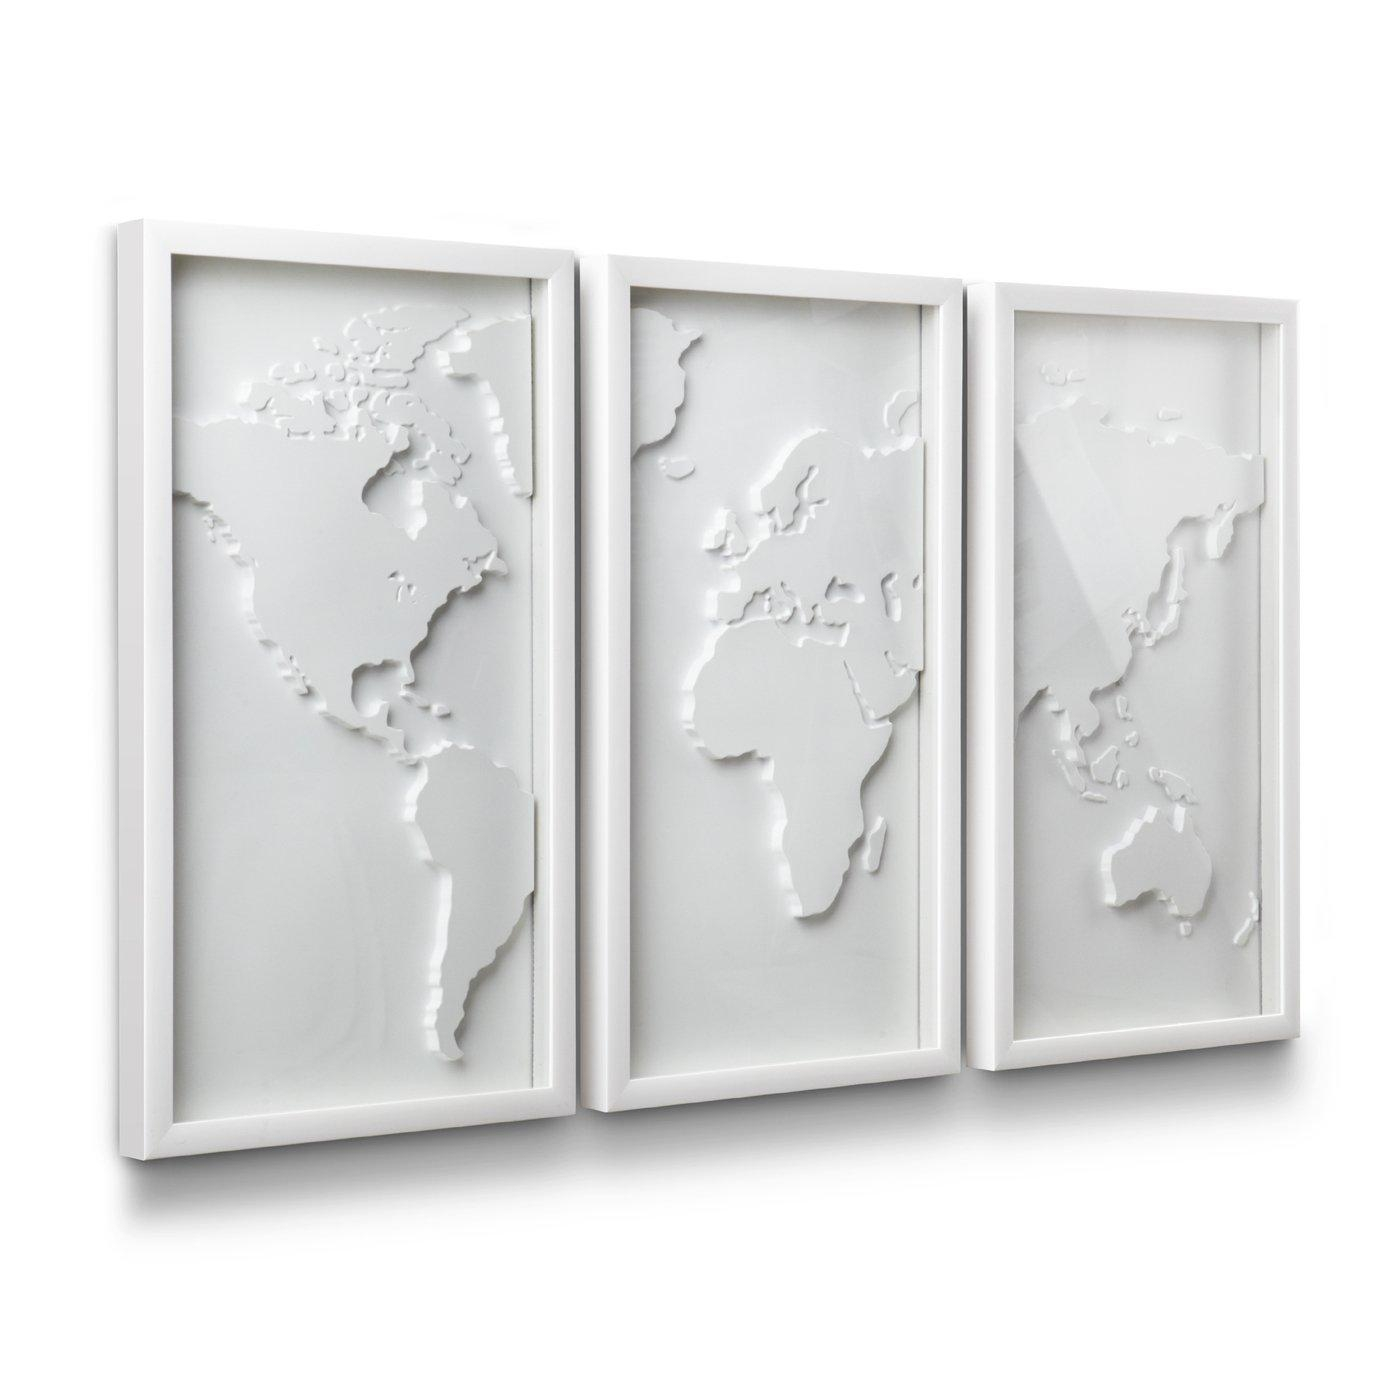 3D Wall Art | Wall Sculptures | Lowe's Canada with regard to White 3D Wall Art